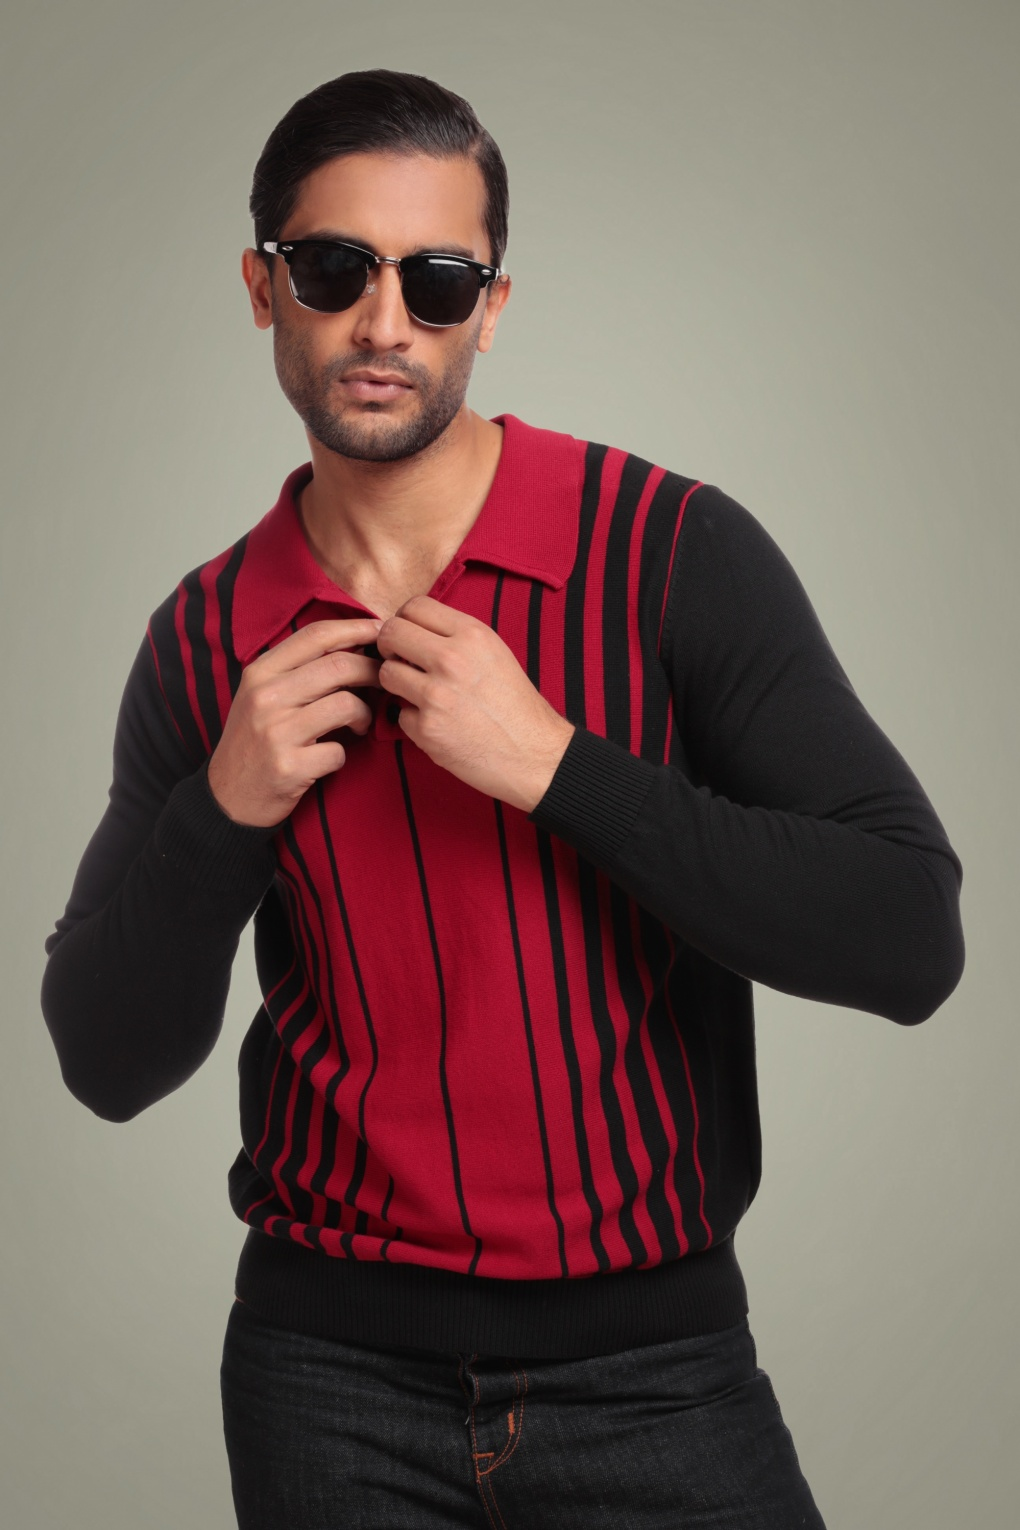 Retro Clothing for Men | Vintage Men's Fashion 50s Jo Stripe Jumper in Black and Red £46.41 AT vintagedancer.com